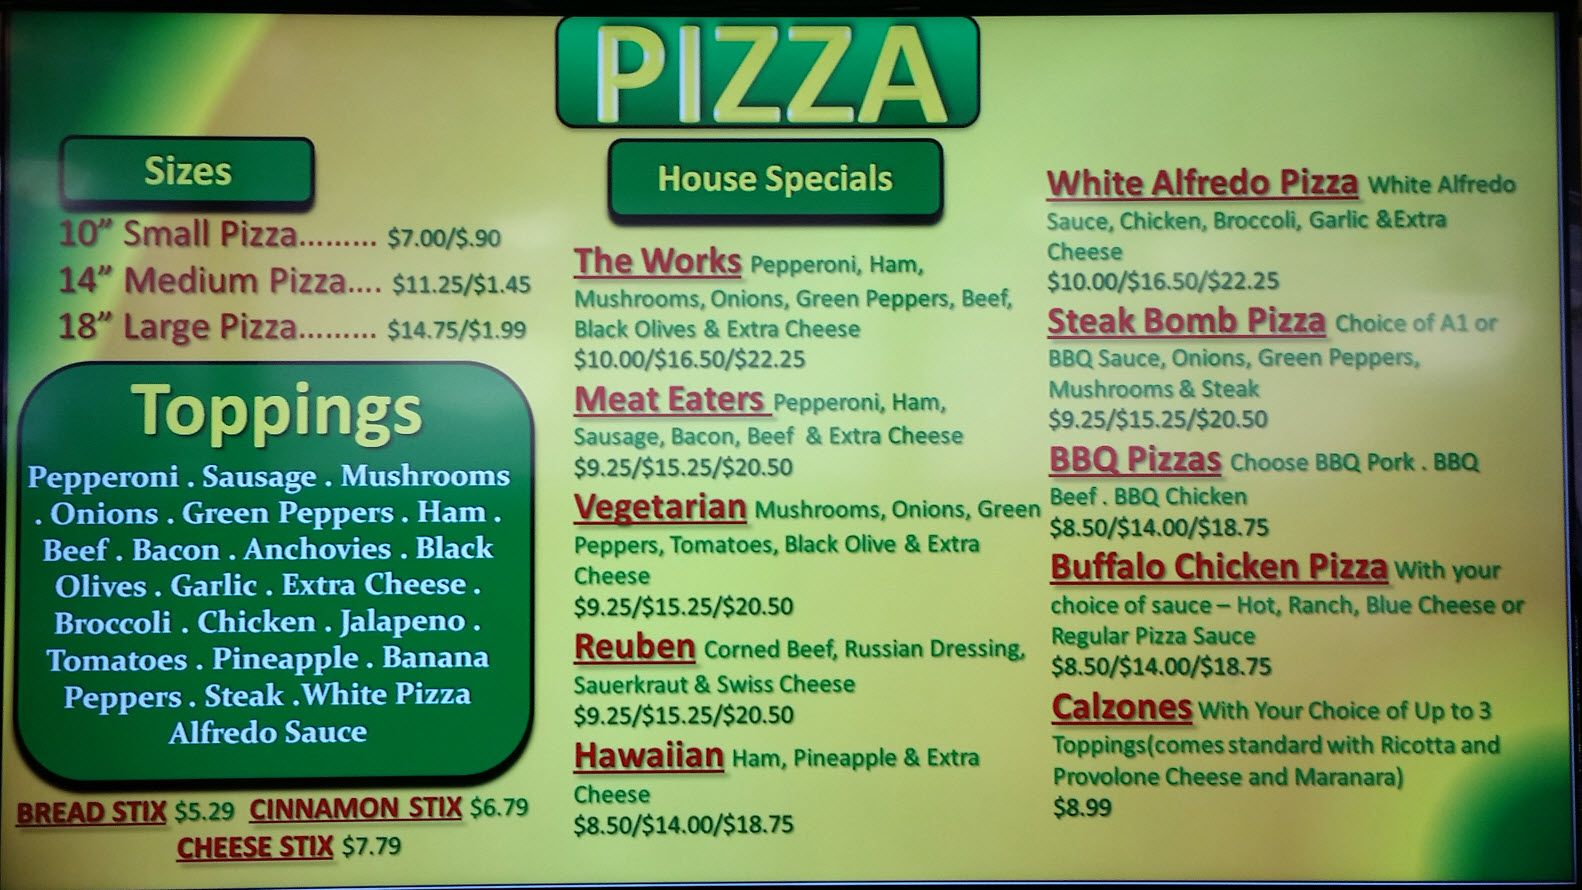 Delivery menu with images delivery menu small pizza